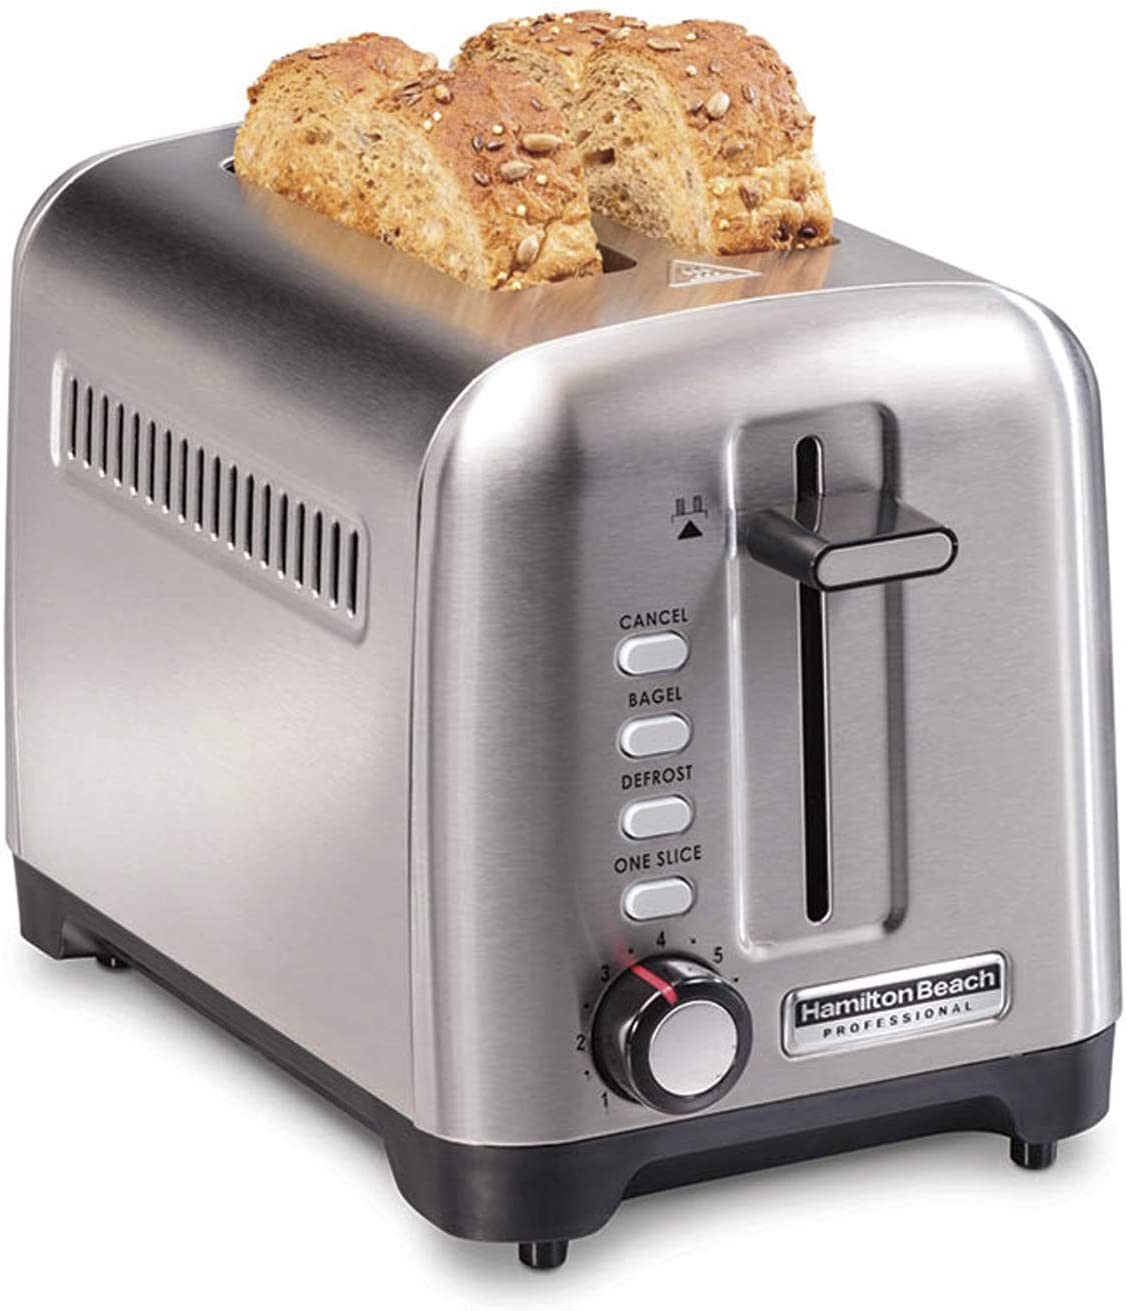 Hamilton Beach Professional 22991 Toaster with Deep & Wide Slots for Artisan Bread & Bagel and Sure-Toast Technology, Auto Shutoff, 2-Slice, Stainless Steel